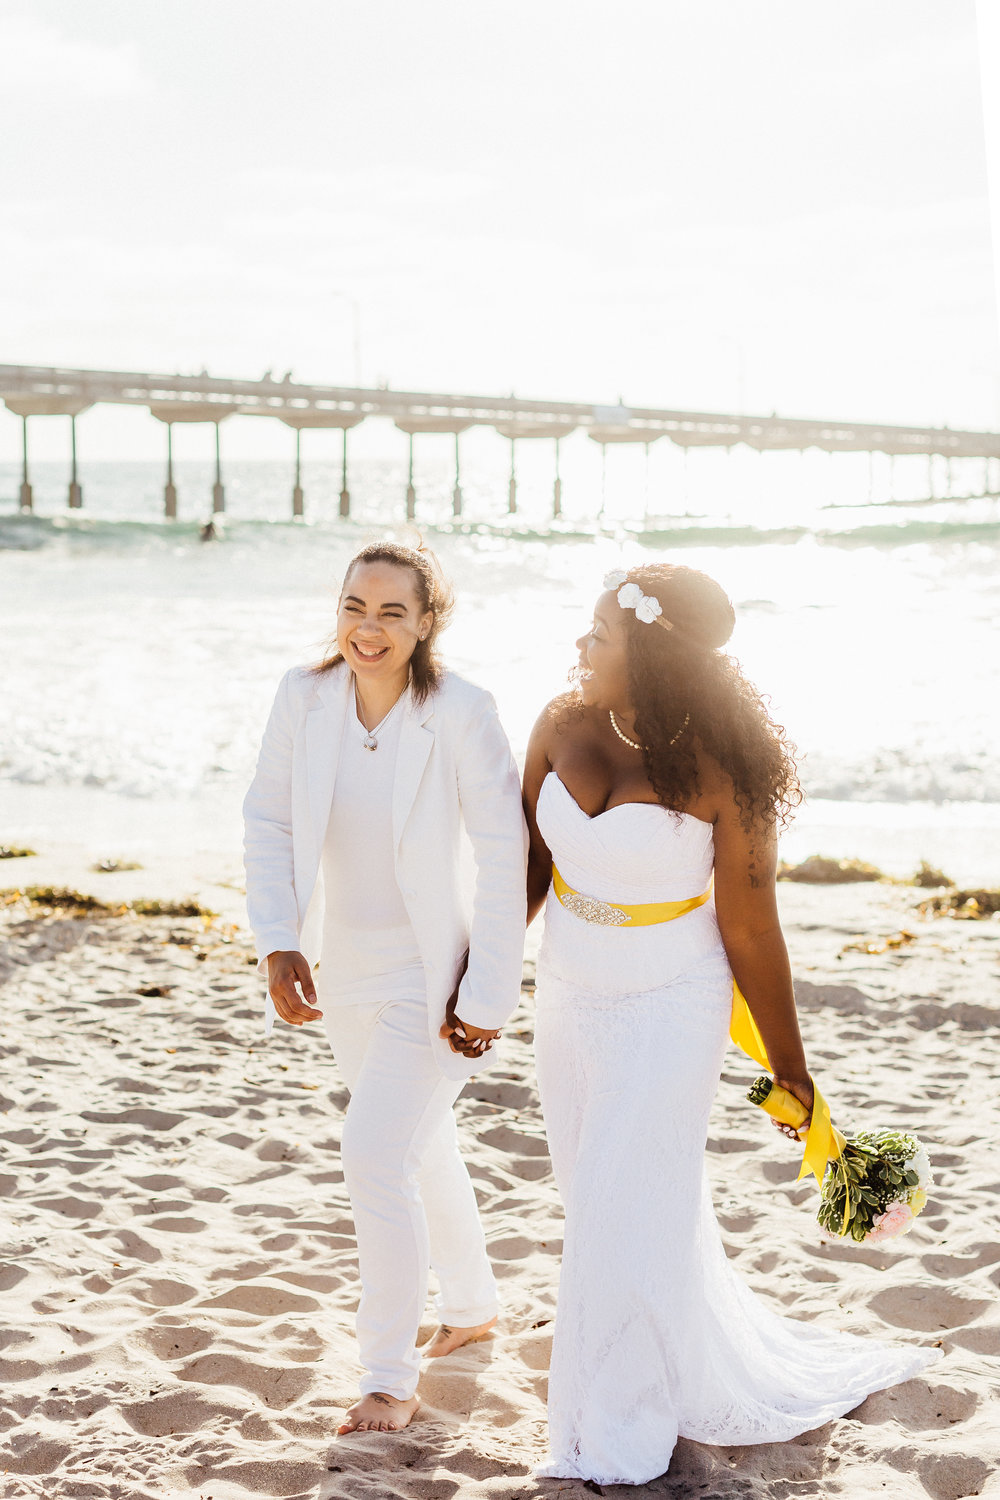 Crystal_Sabrina_Ocean_Beach_Wed_Session_076.jpg